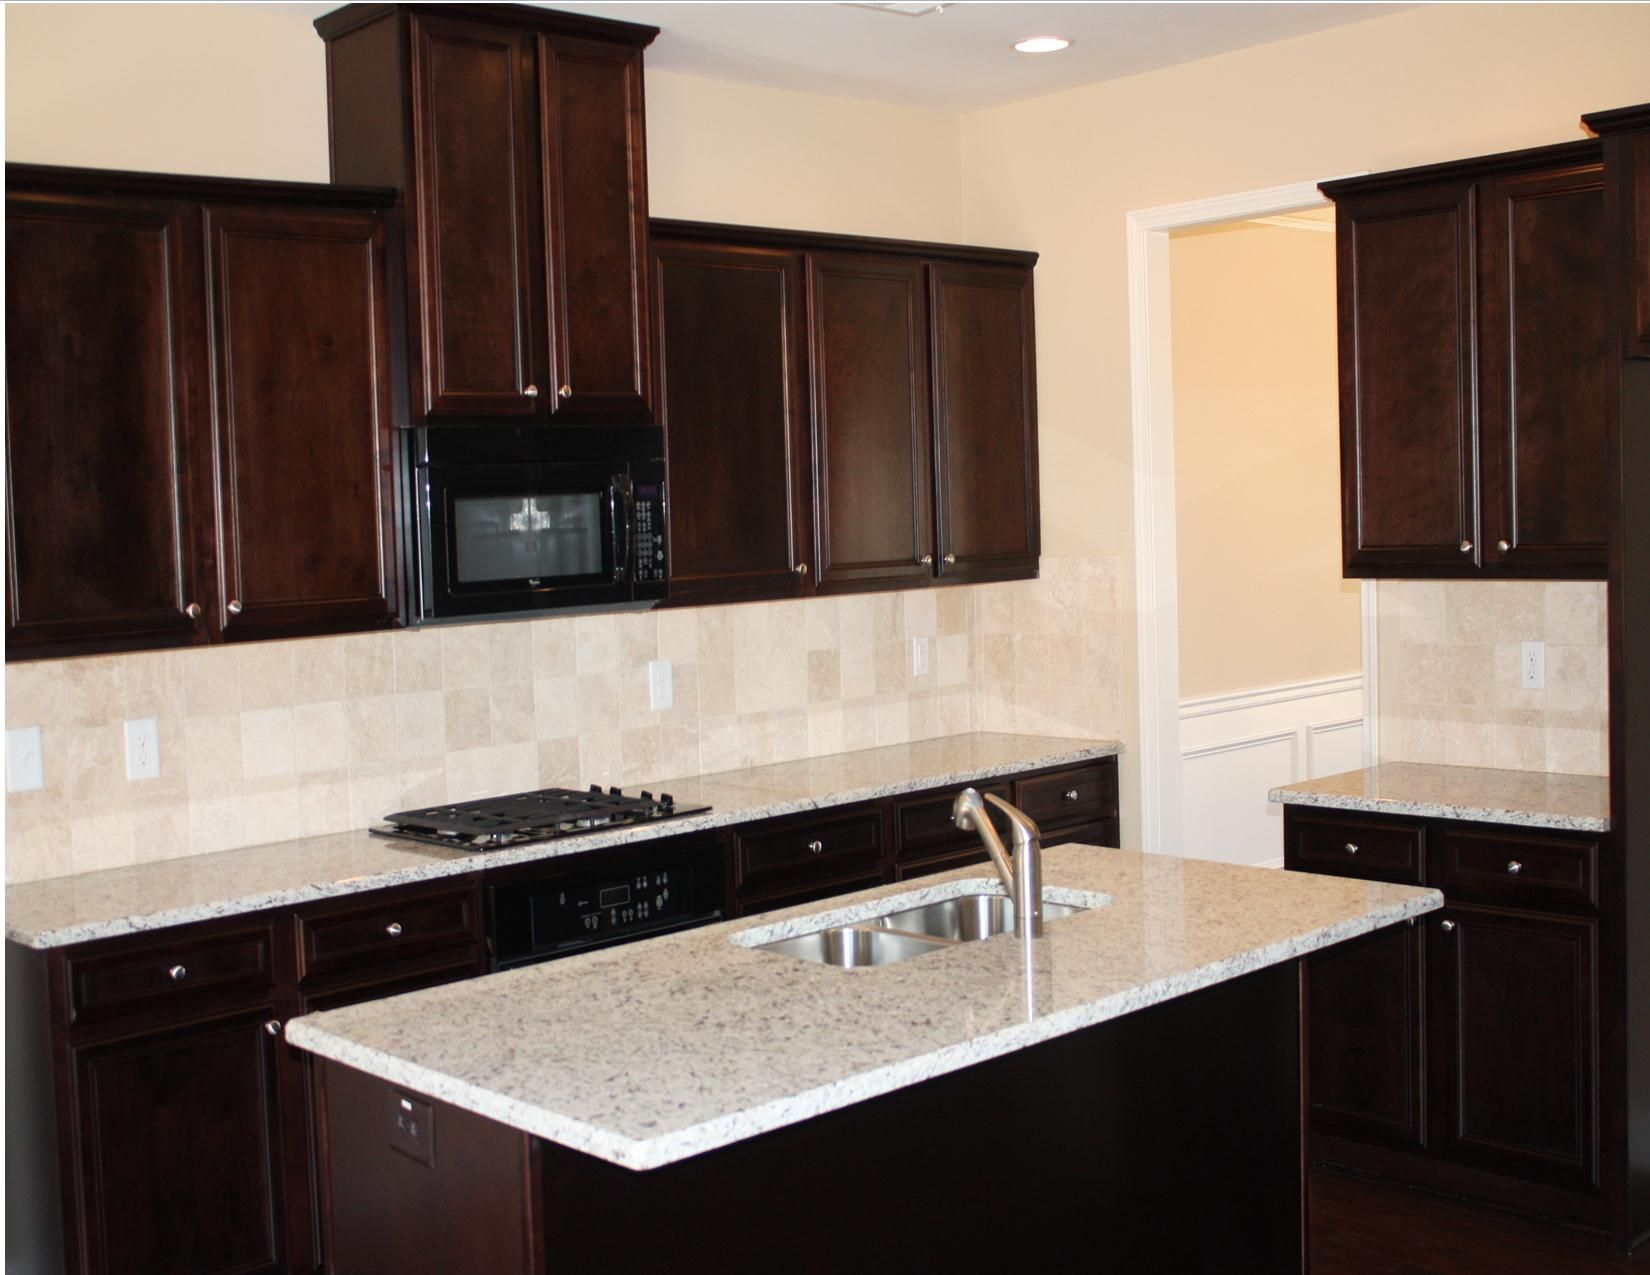 Kitchen Cabinet Espresso Color Glorious White Porcelain Square Top Espresso Cabinets Kitchen